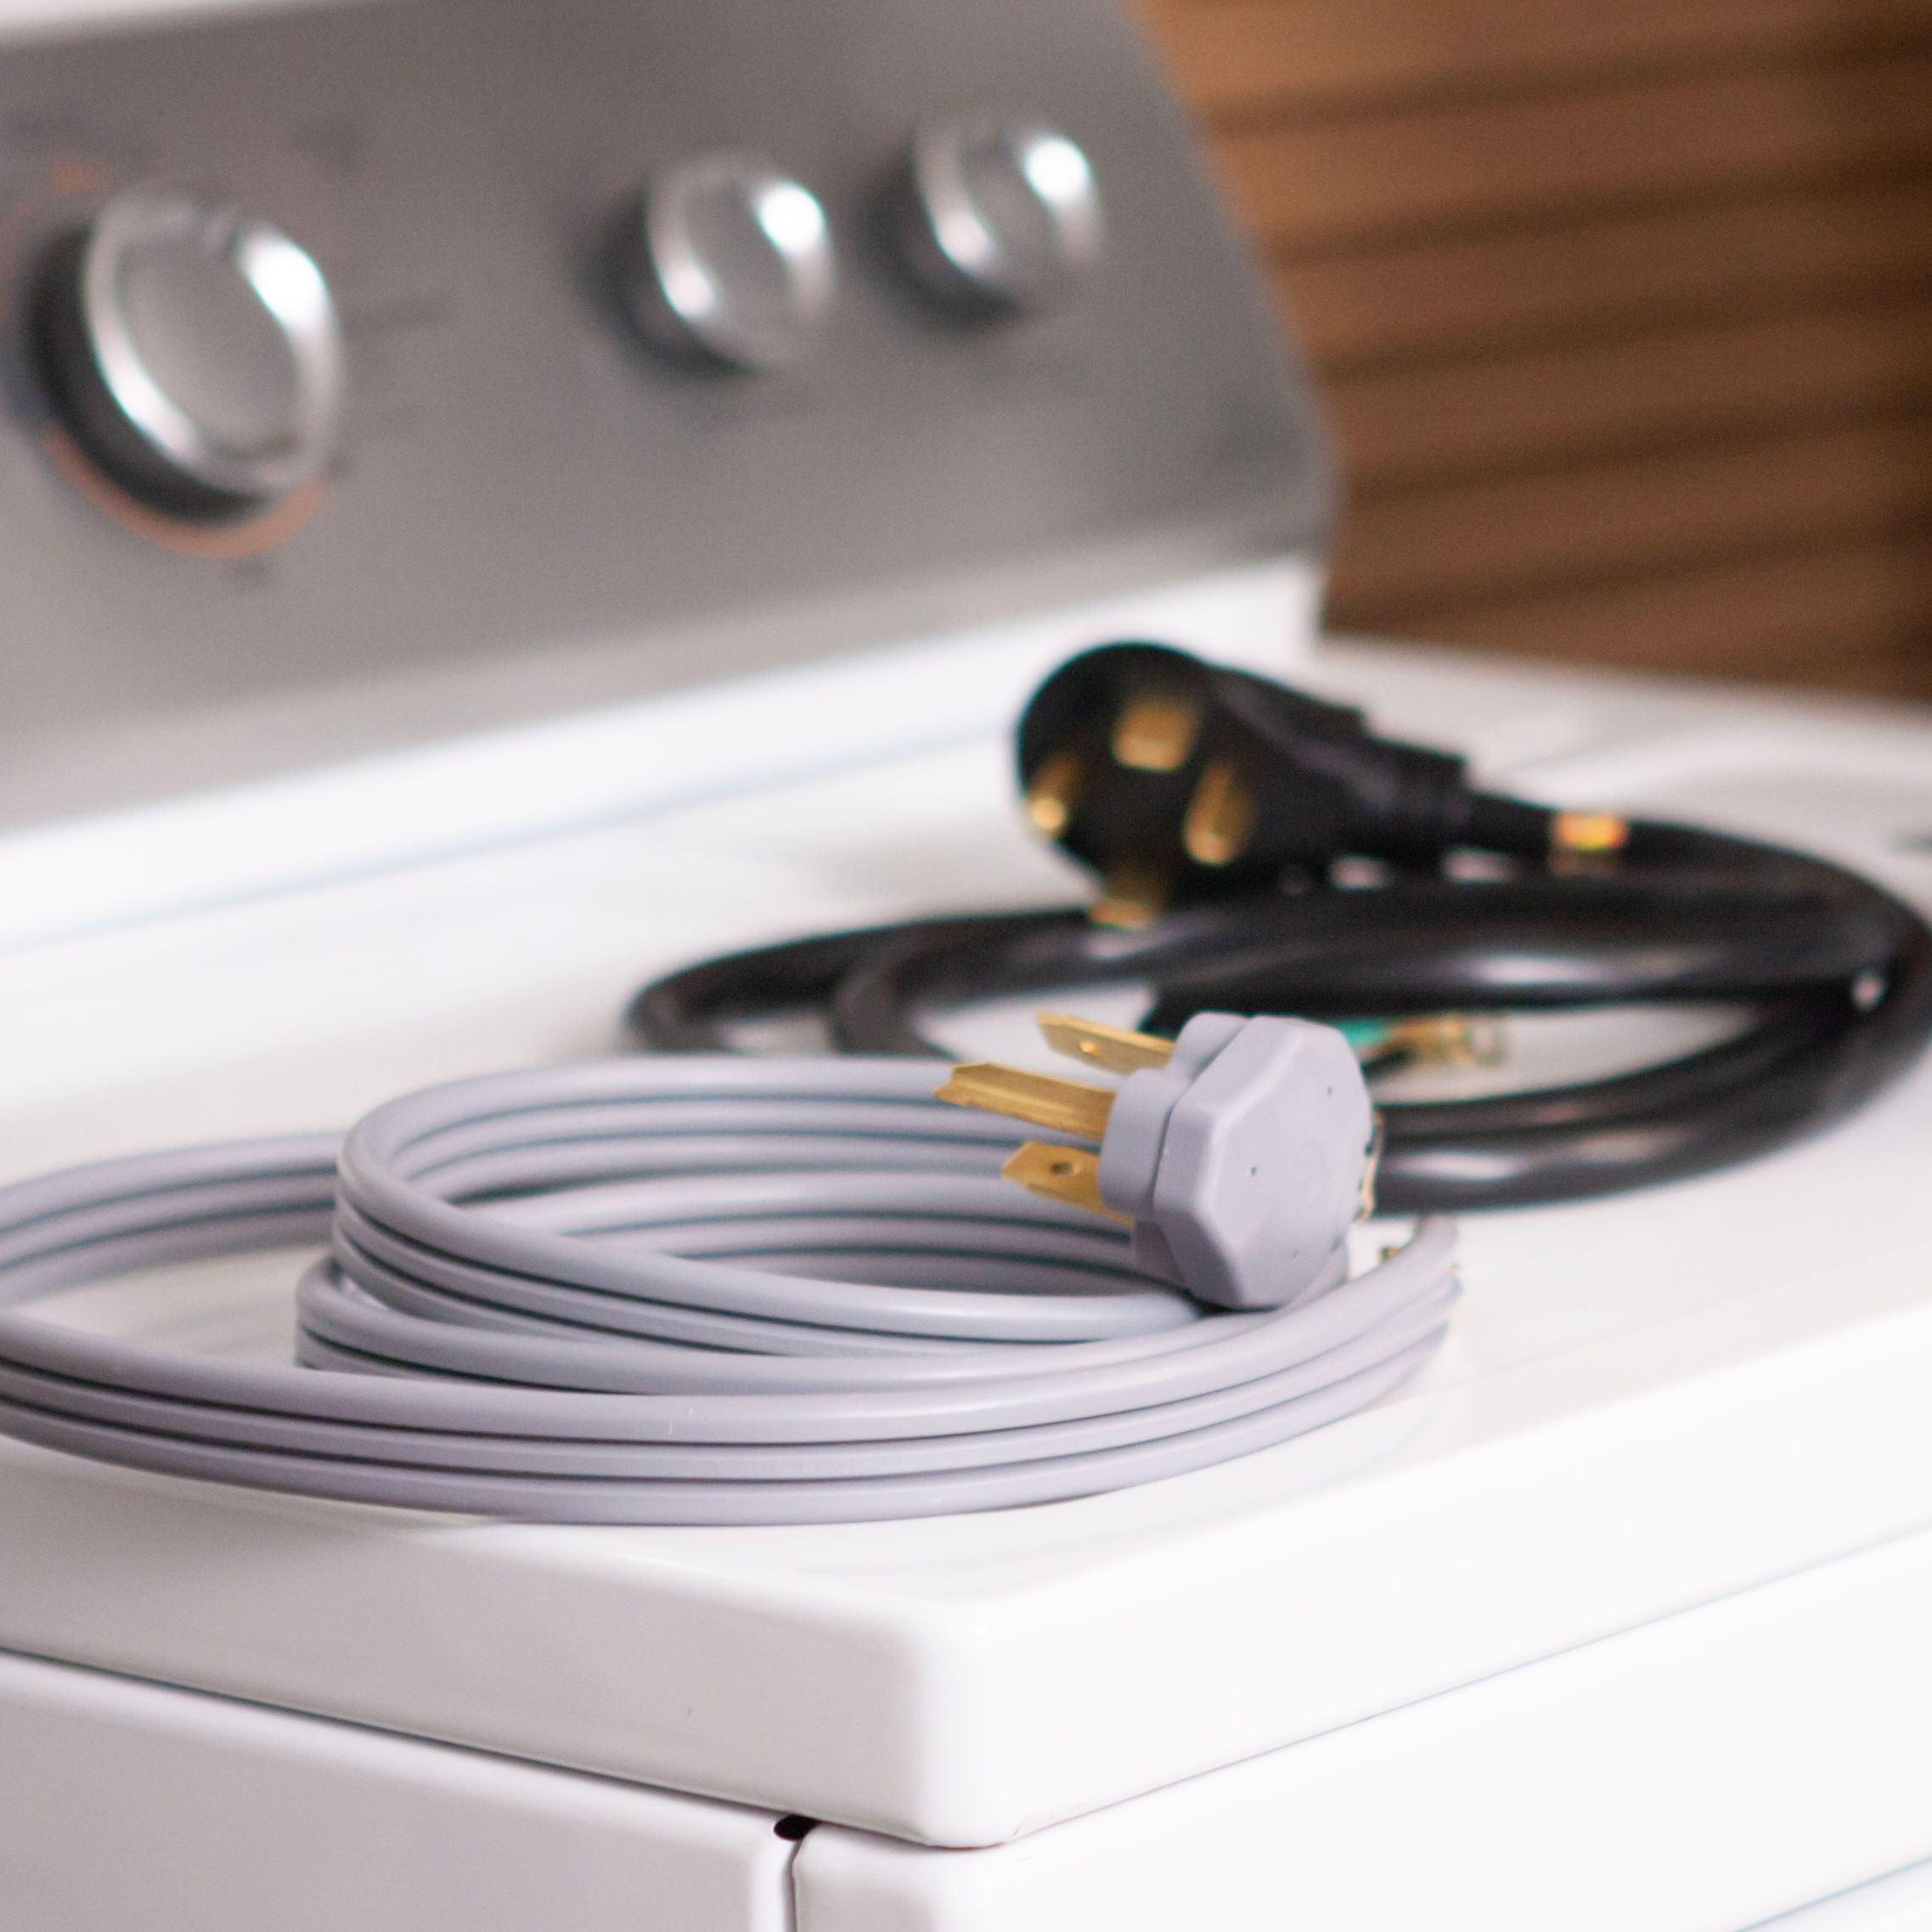 How To Use A 4 Prong Dryer Cord With A 3 Slot Outlet